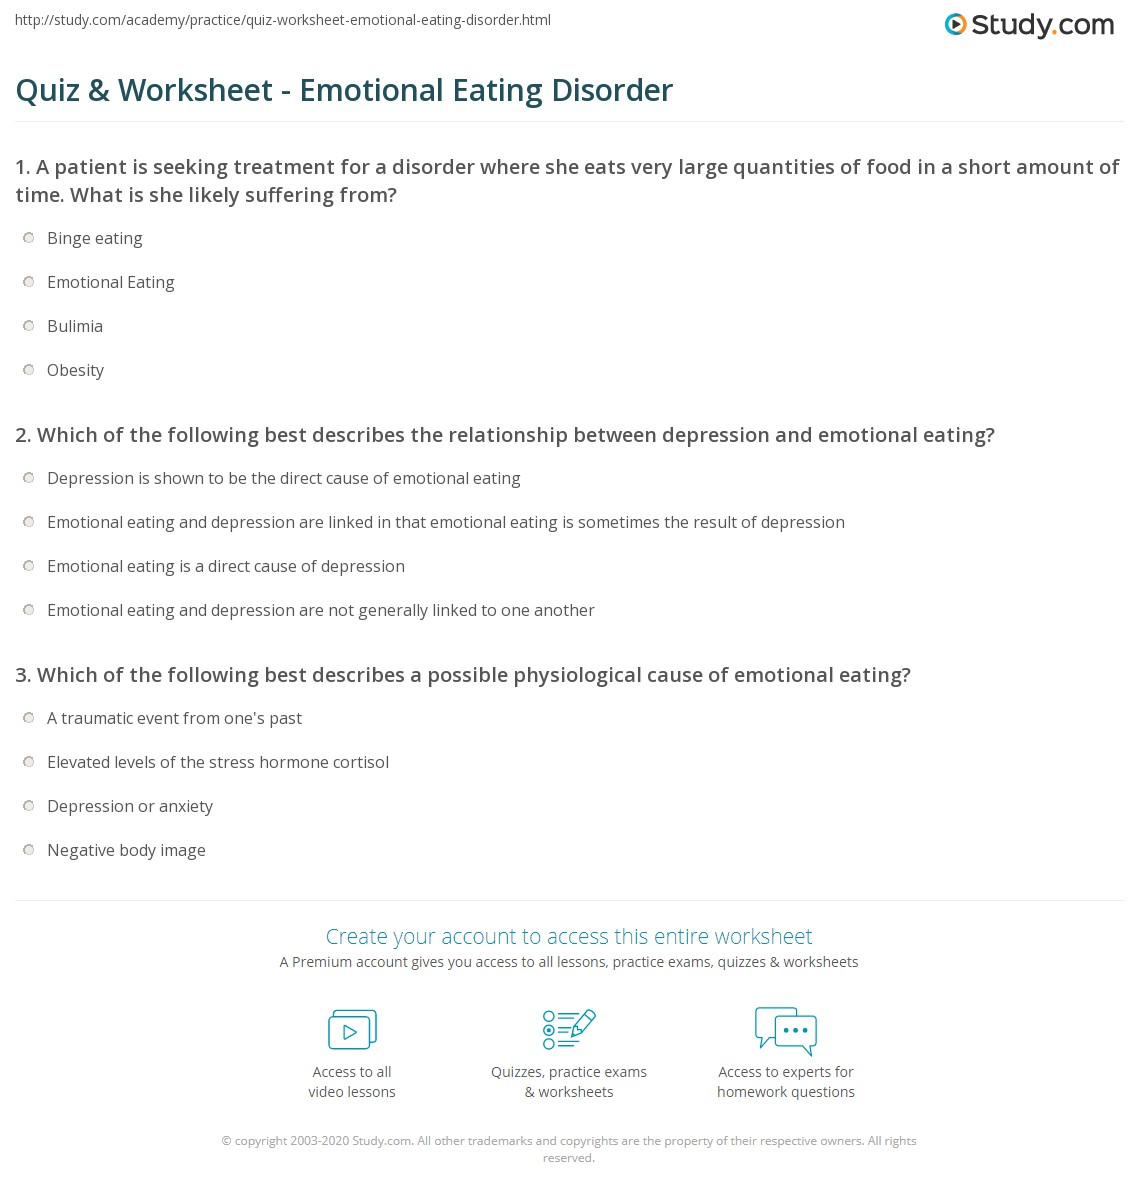 Quiz & Worksheet - Emotional Eating Disorder | Study.com